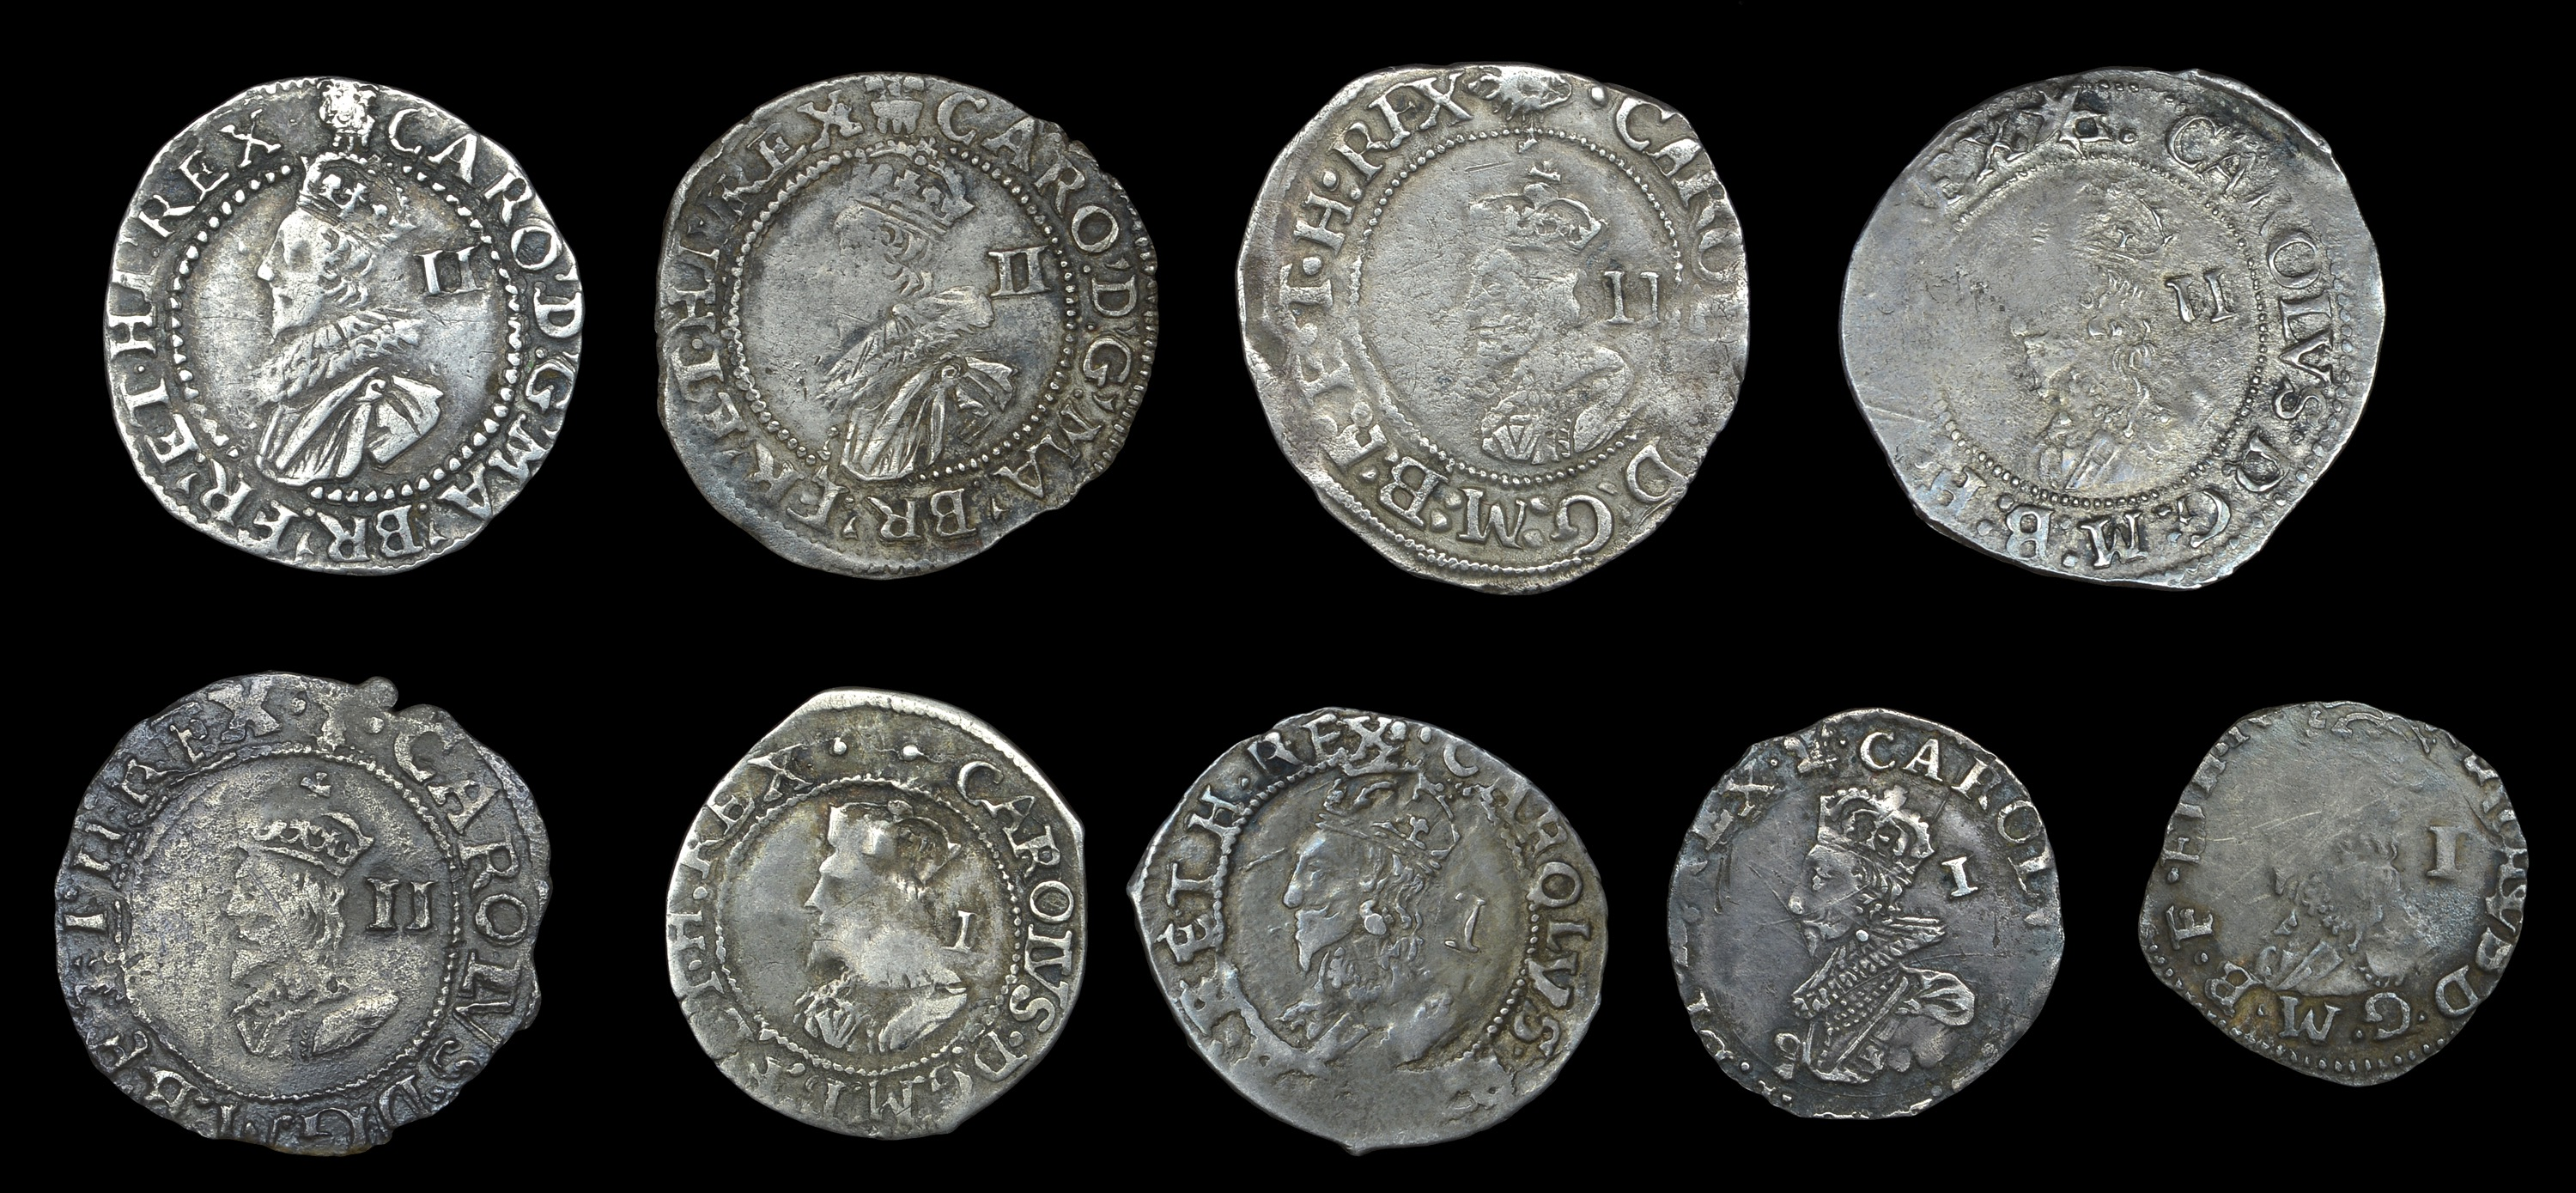 Lot 35 - The Collection of British Coins Formed by the Late Ray Inder (Part IV)